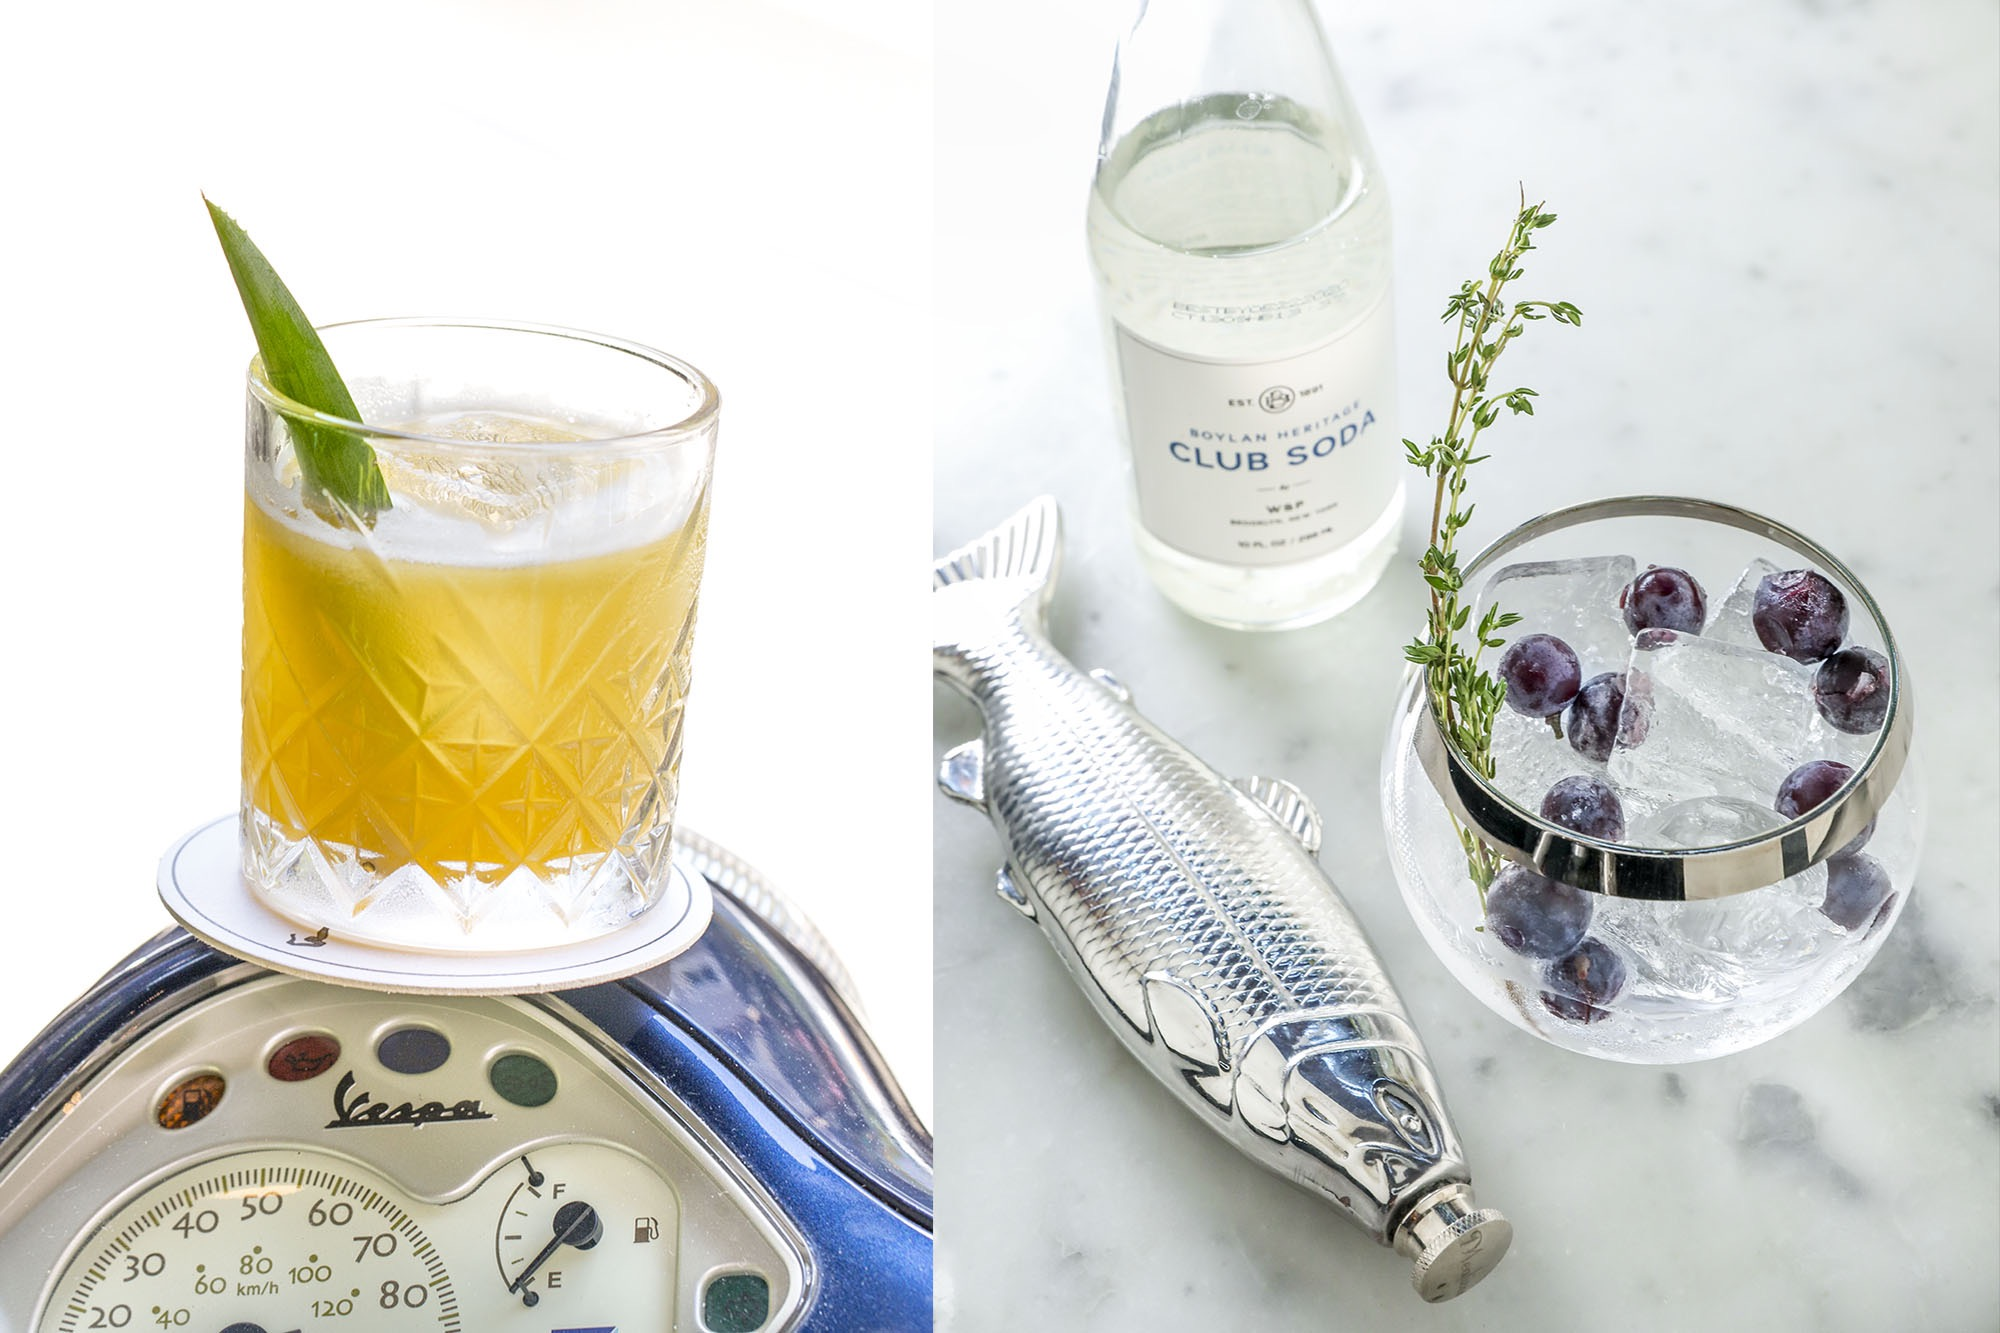 An Italian cocktail on a Vespa. And a cocktail served in a flask with blueberries and thyme.